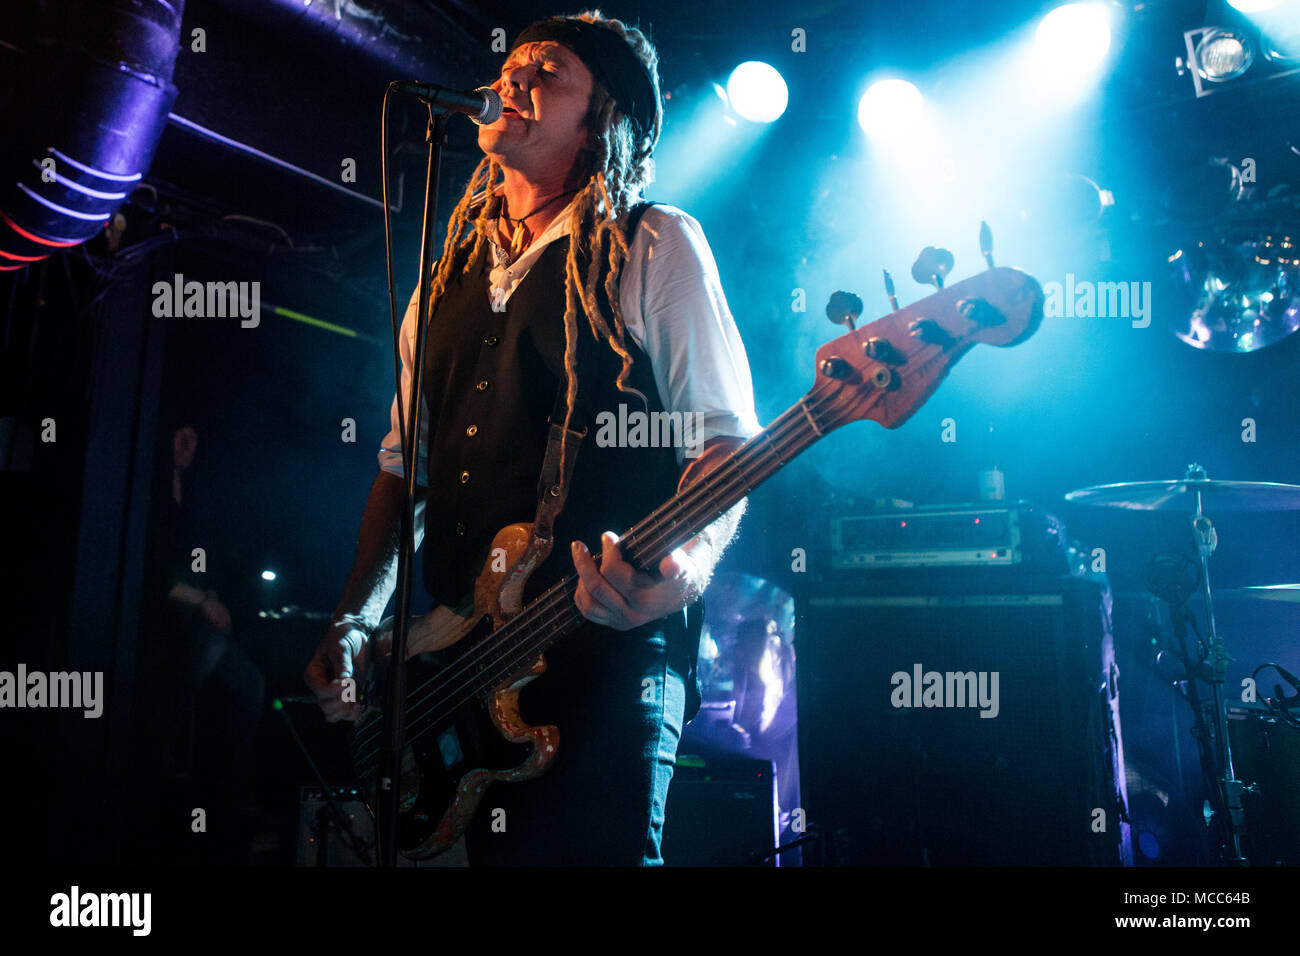 Norway, Oslo - April 14, 2018. The American alternative rockband Nada Surf performs a live concert at John Dee in Oslo. Here bass player Daniel Lorca is seen live on stage. (Photo credit: Gonzales Photo - Per-Otto Oppi). Stock Photo